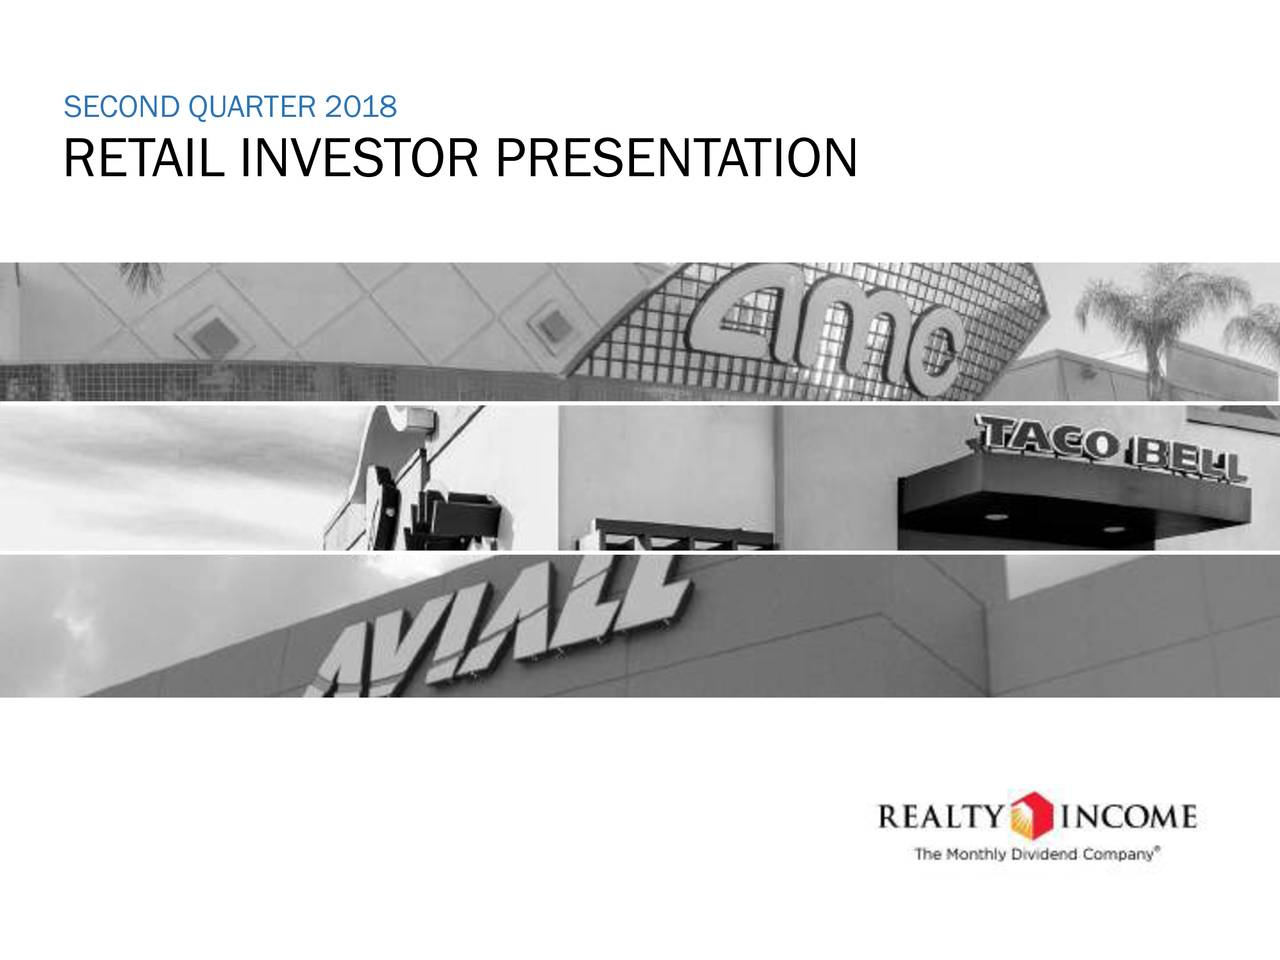 Realty Income Corporation 2018 Q2 Results Earnings Call Slides